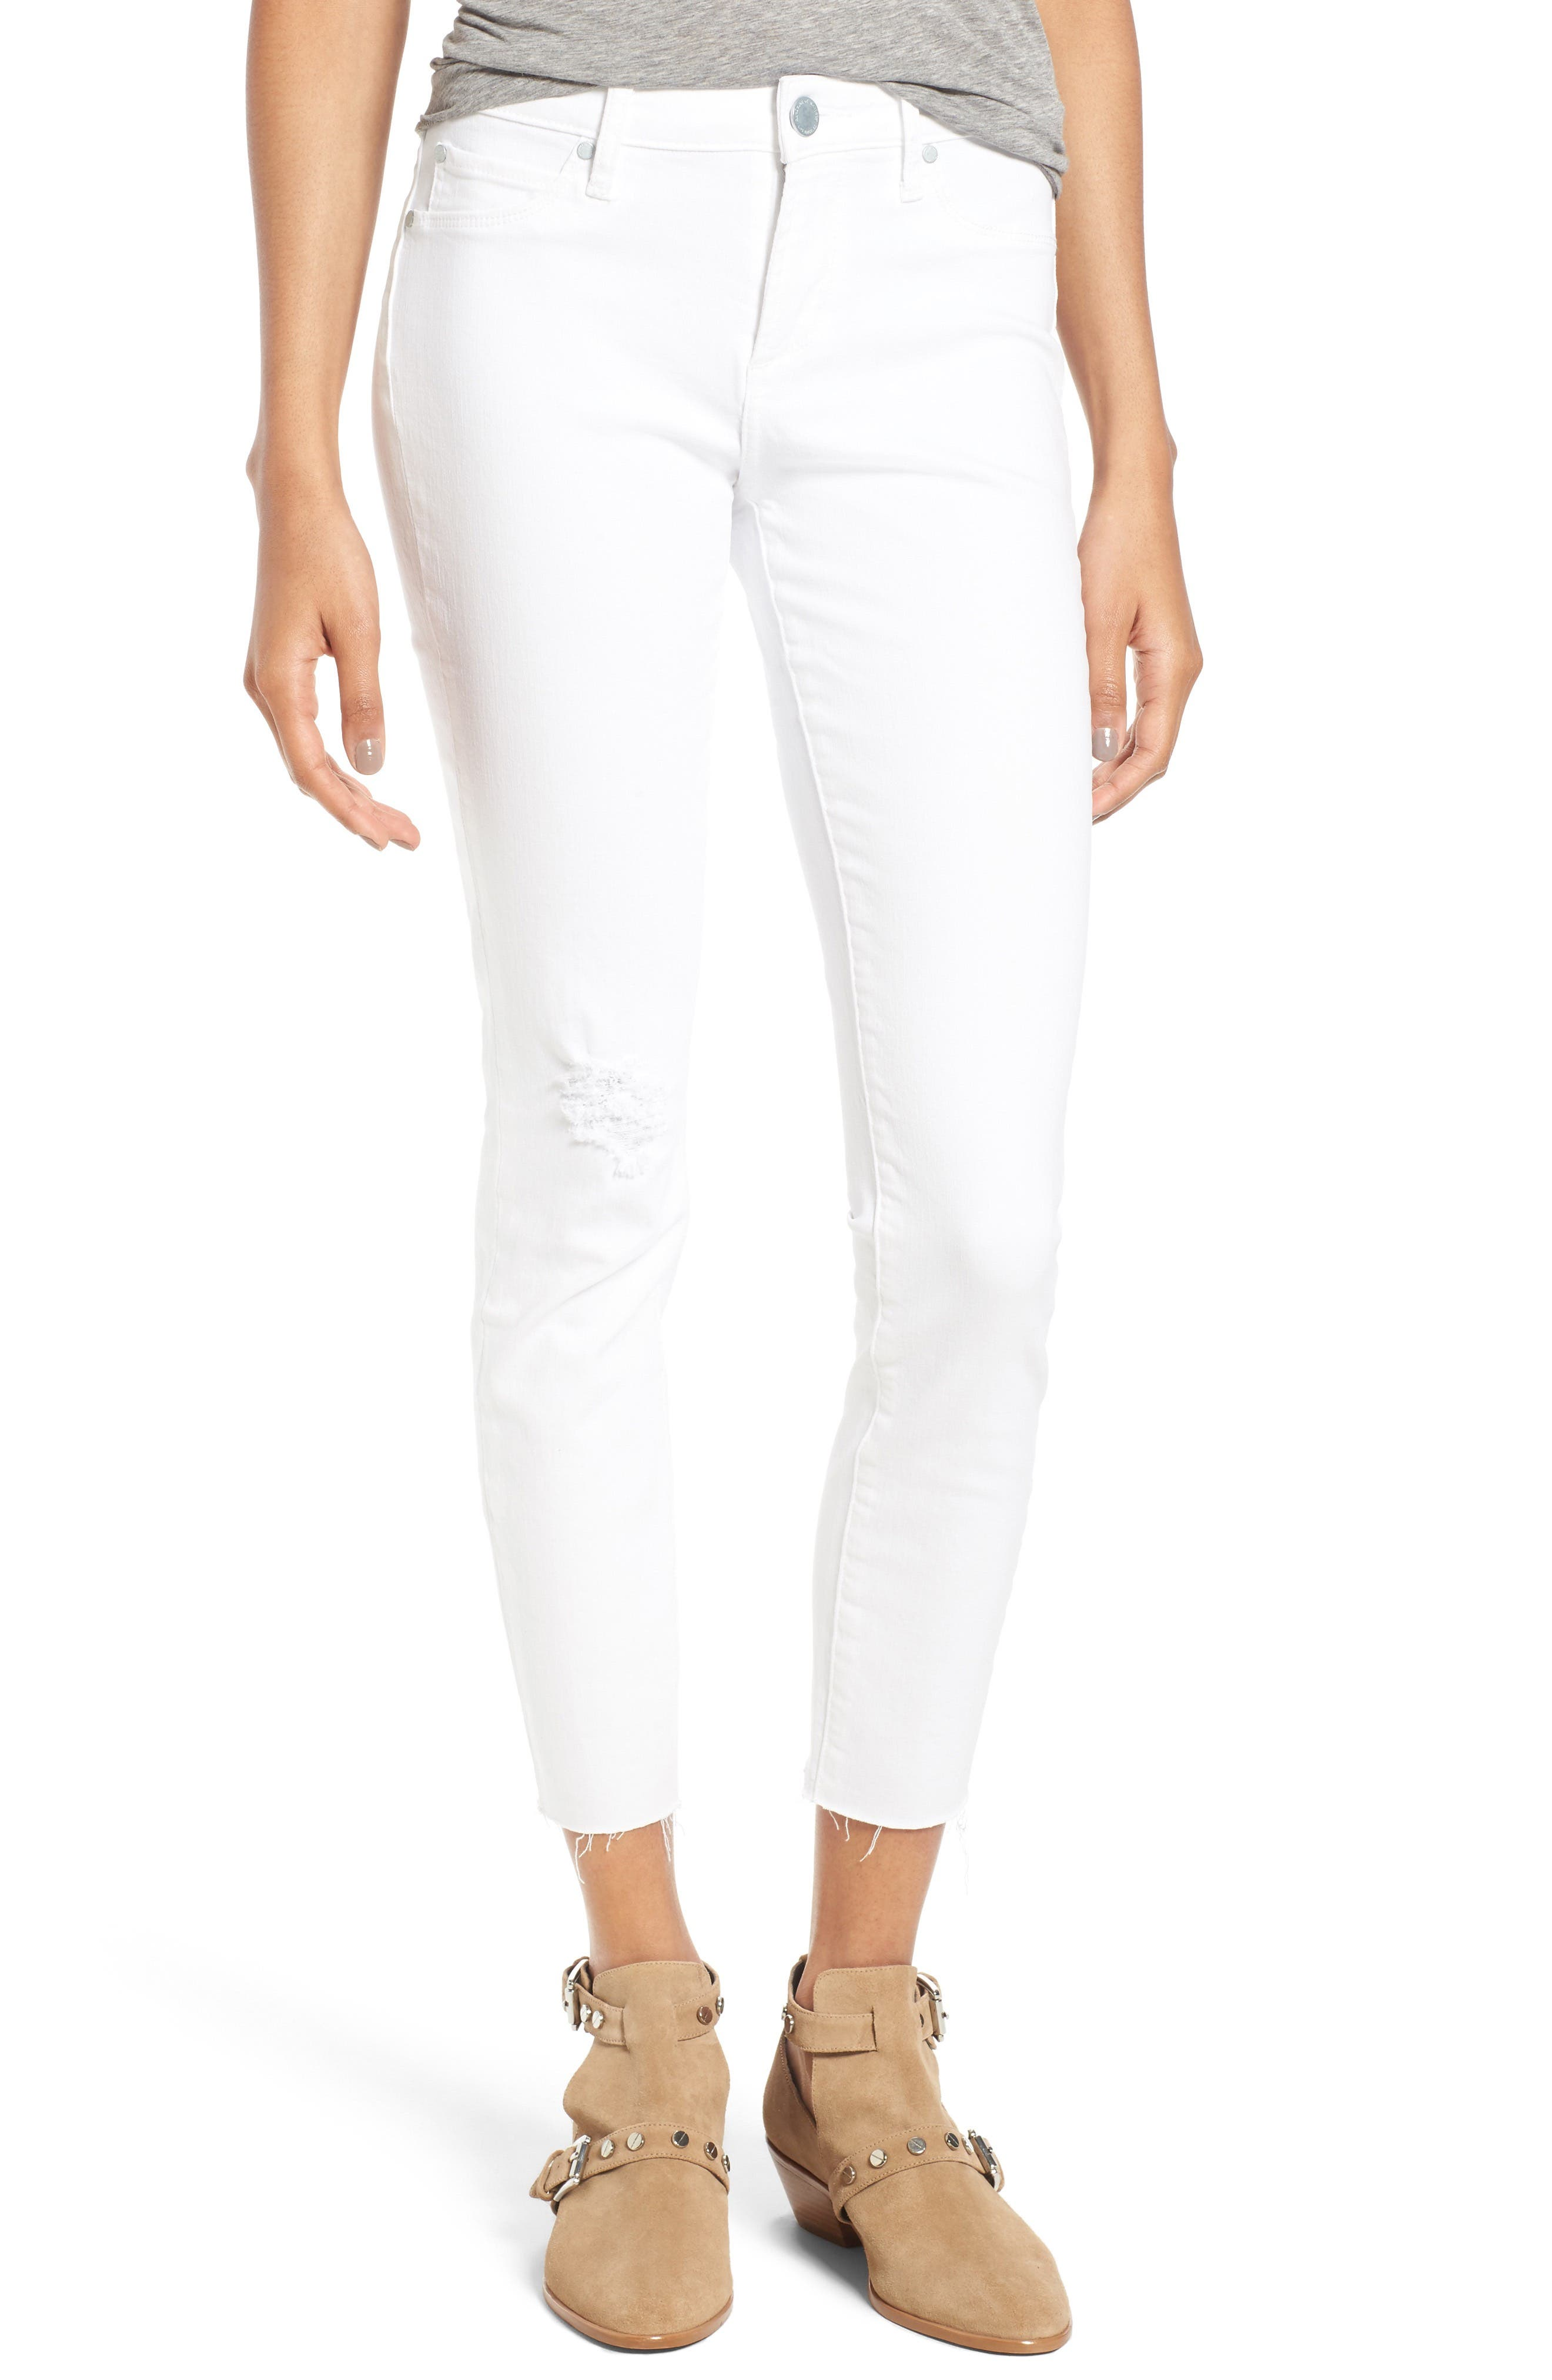 ARTICLES OF SOCIETY, Carly Skinny Crop Jeans, Main thumbnail 1, color, 110